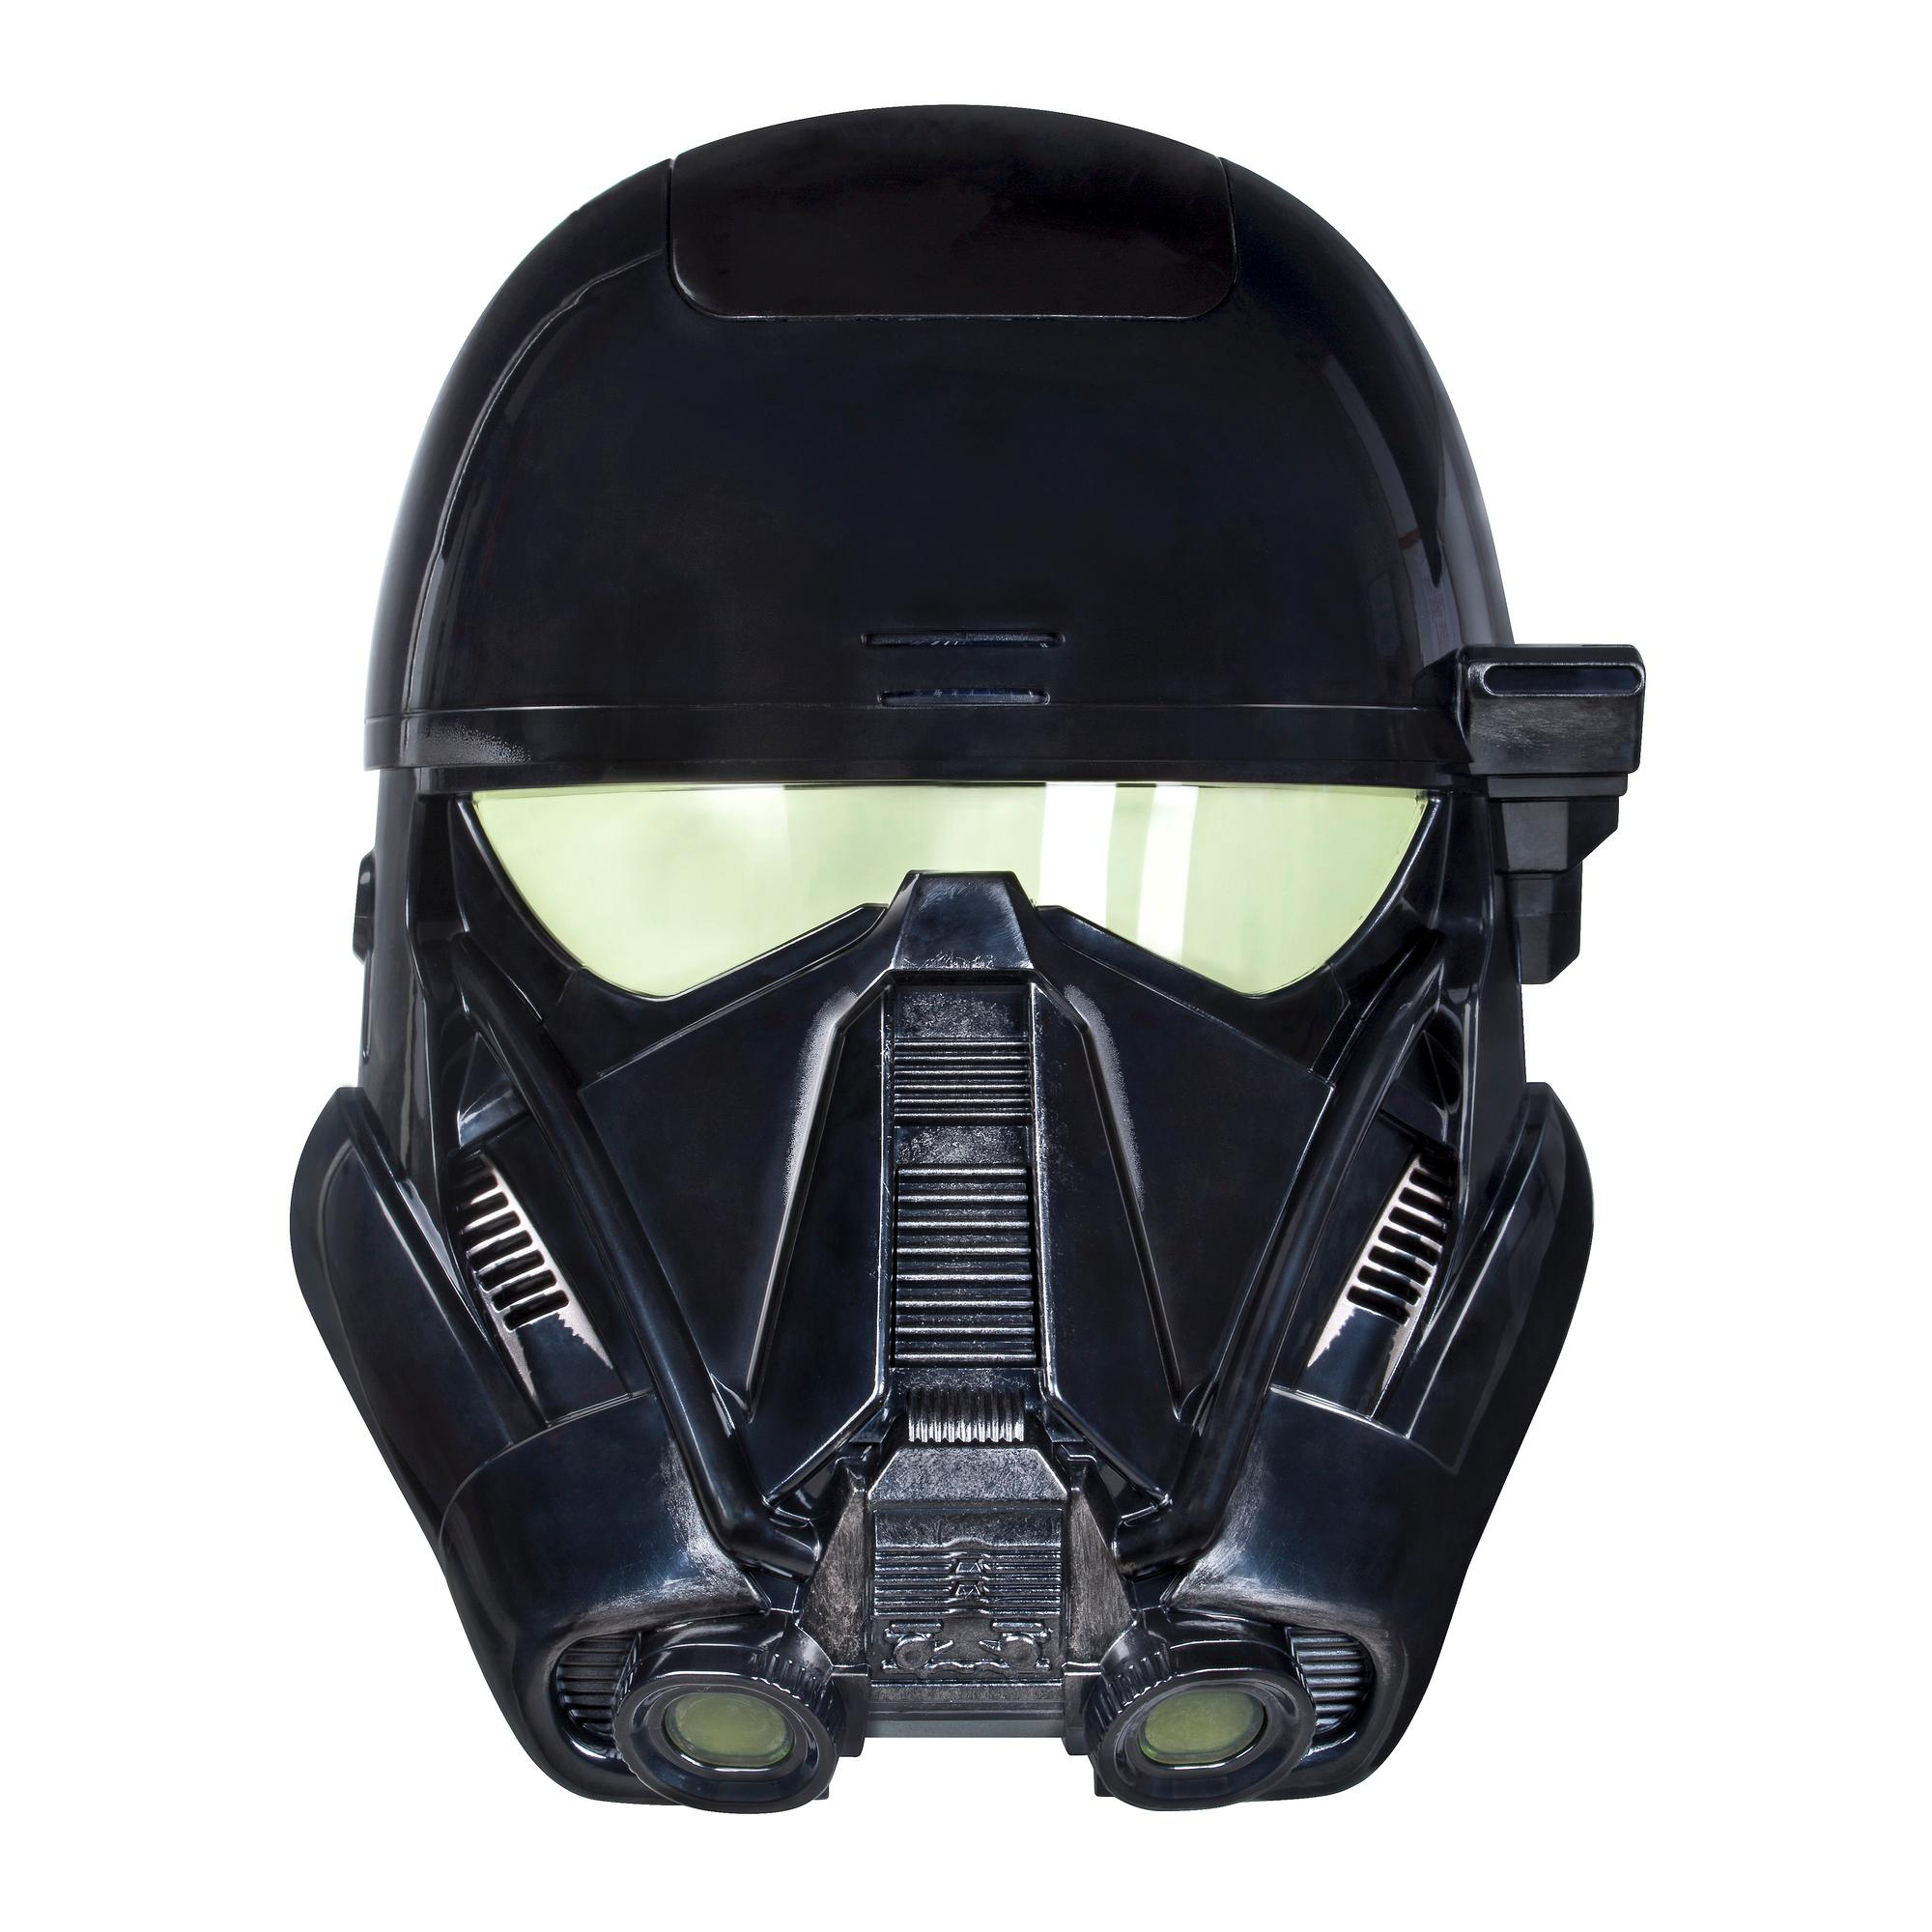 Star Wars: Rogue One Imperial Death Trooper Voice Changer Mask